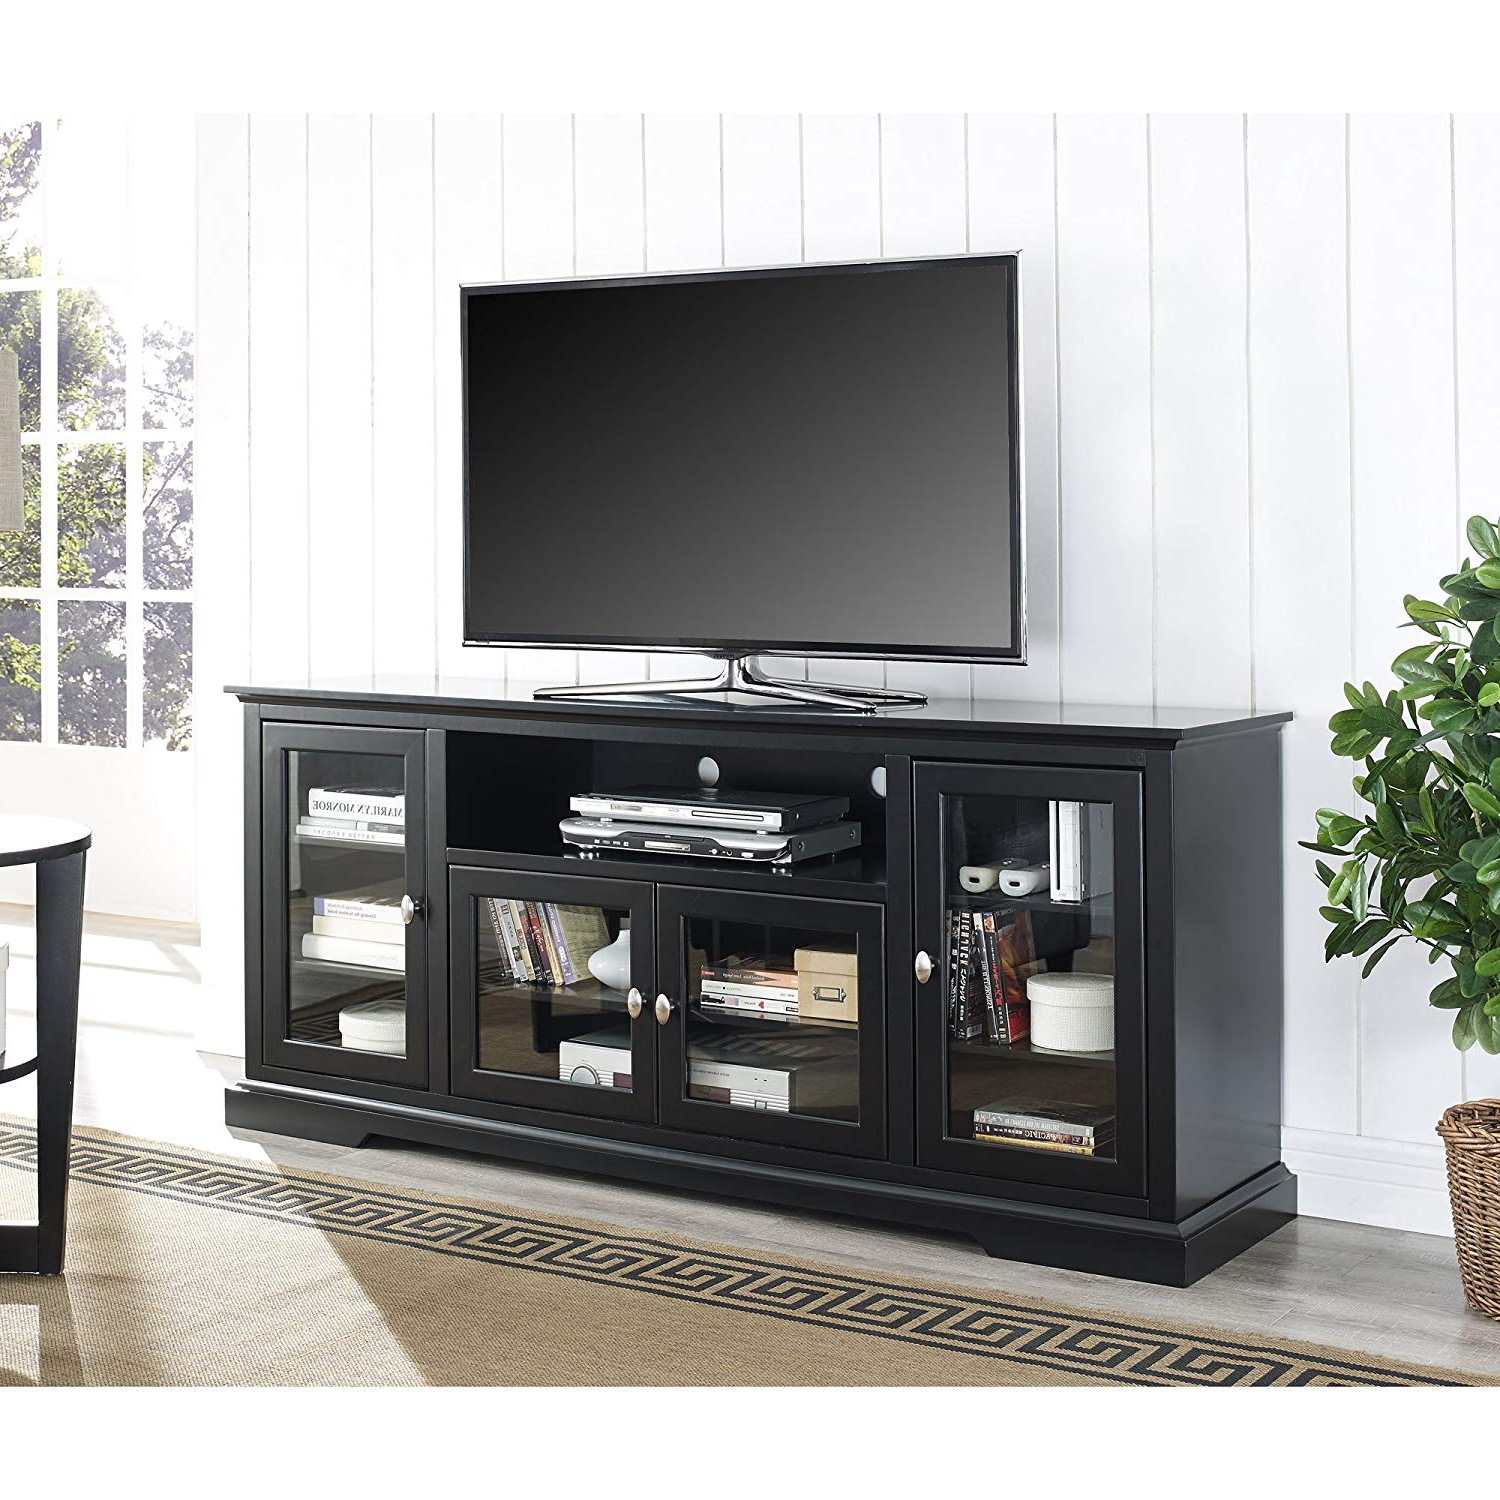 "Recent Dark Wood Tv Stands Pertaining To Amazon: We Furniture 70"" Highboy Style Wood Tv Stand Console (Gallery 5 of 20)"